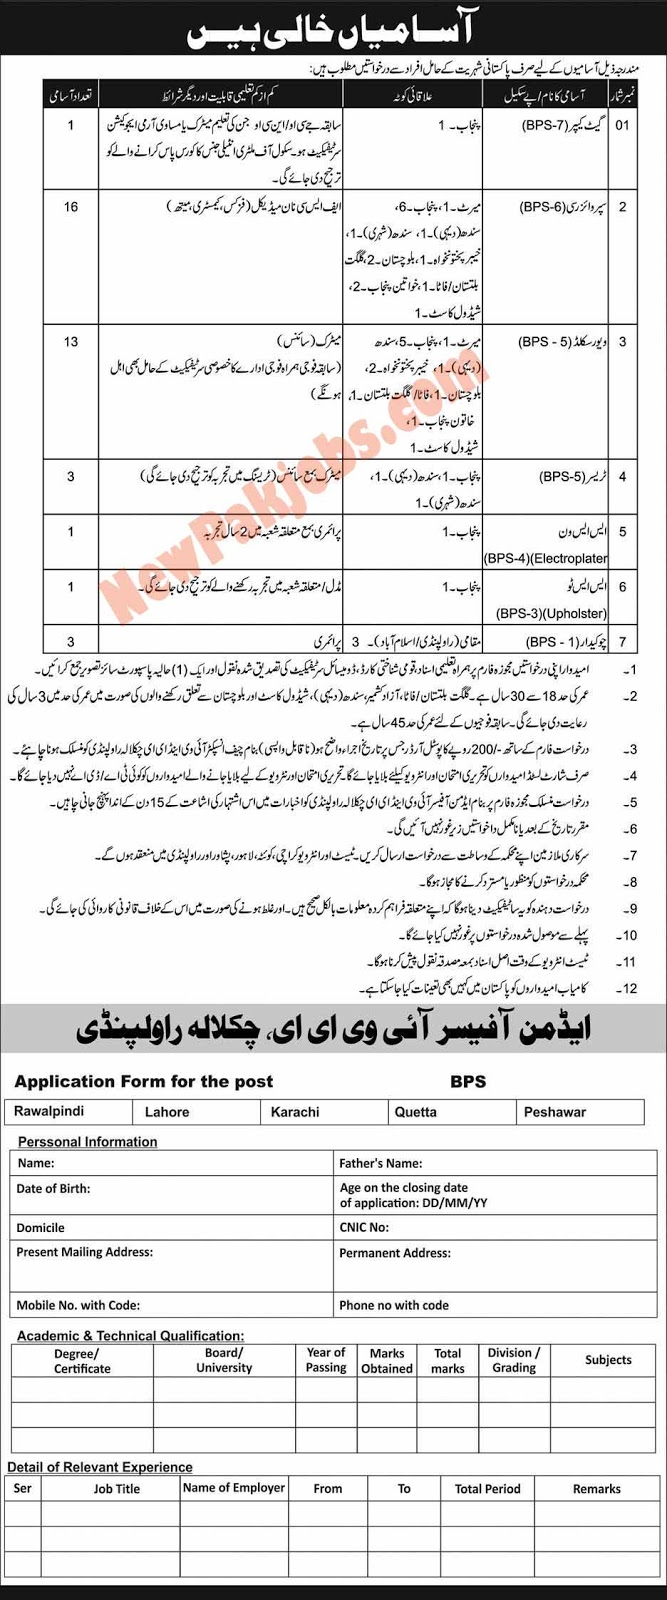 Govt Jobs for Pakistani Nationality Holders in Rawalpindi